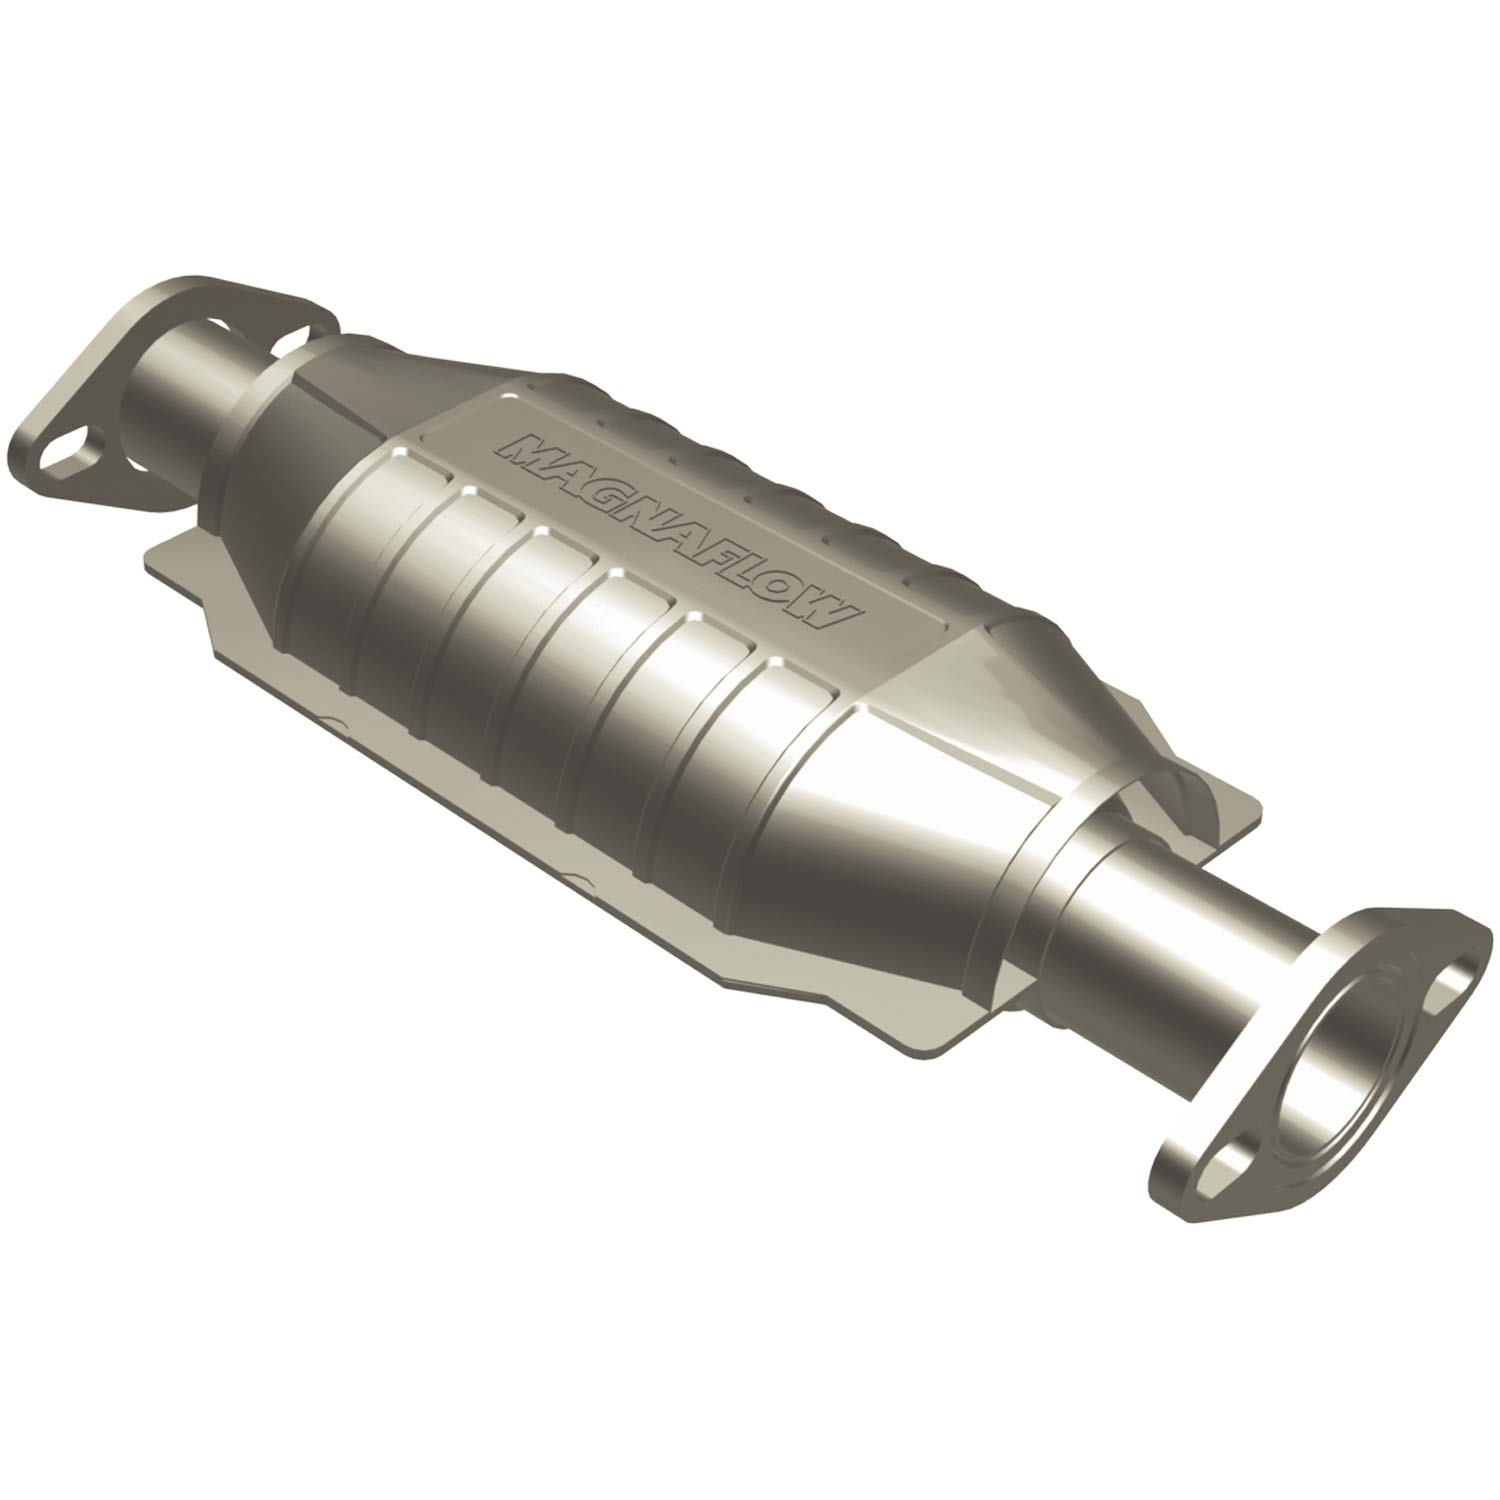 MagnaFlow 339884 Direct Fit Catalytic Converter (CARB compliant) by MagnaFlow Exhaust Products (Image #1)